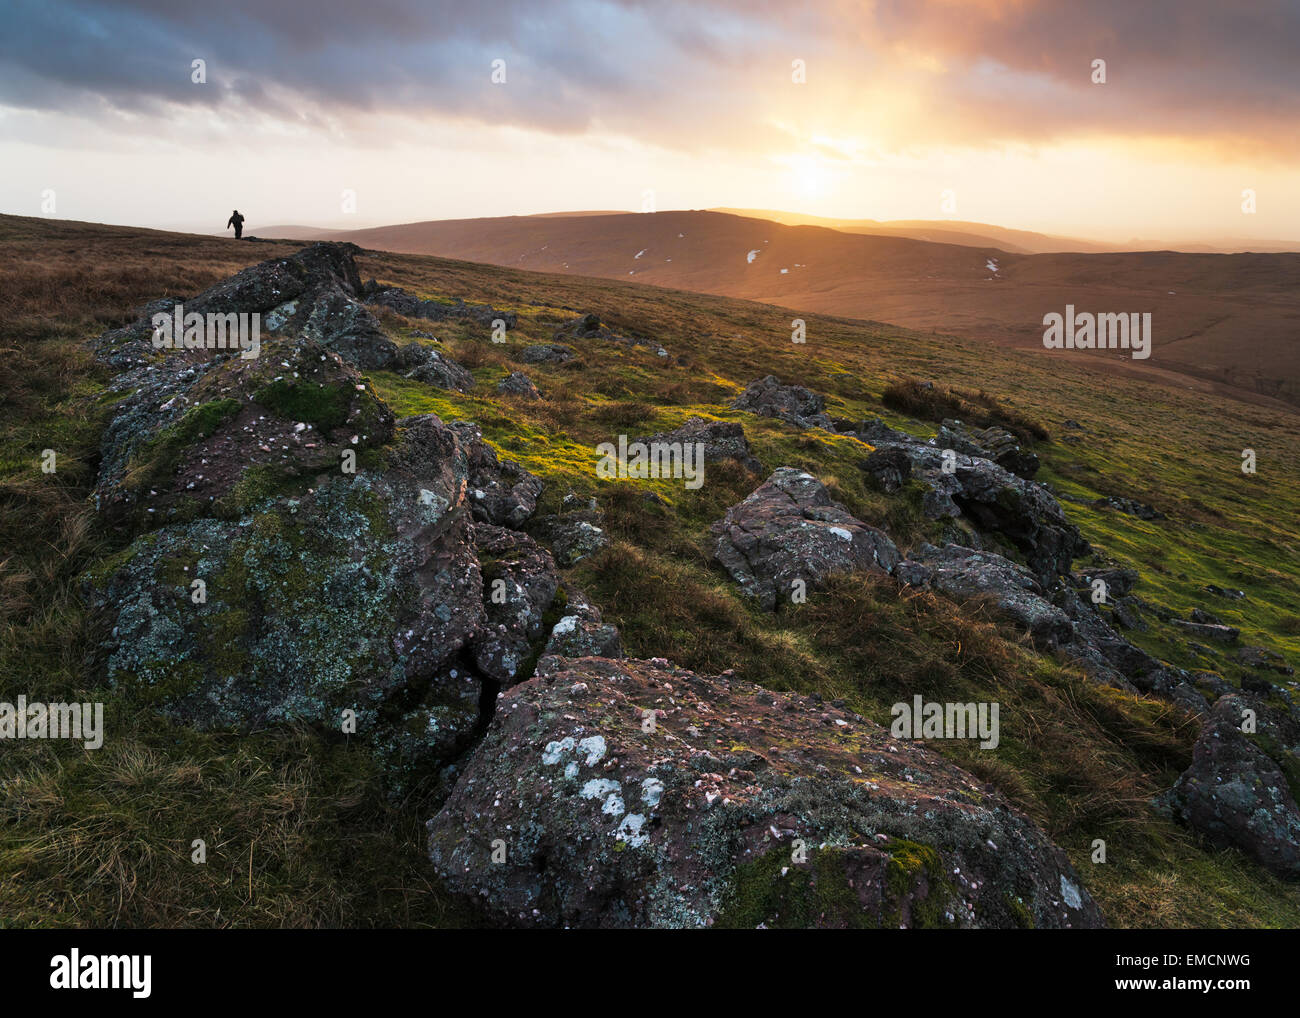 Dramatic light on the Black Mountains in the Brecon Beacons. - Stock Image